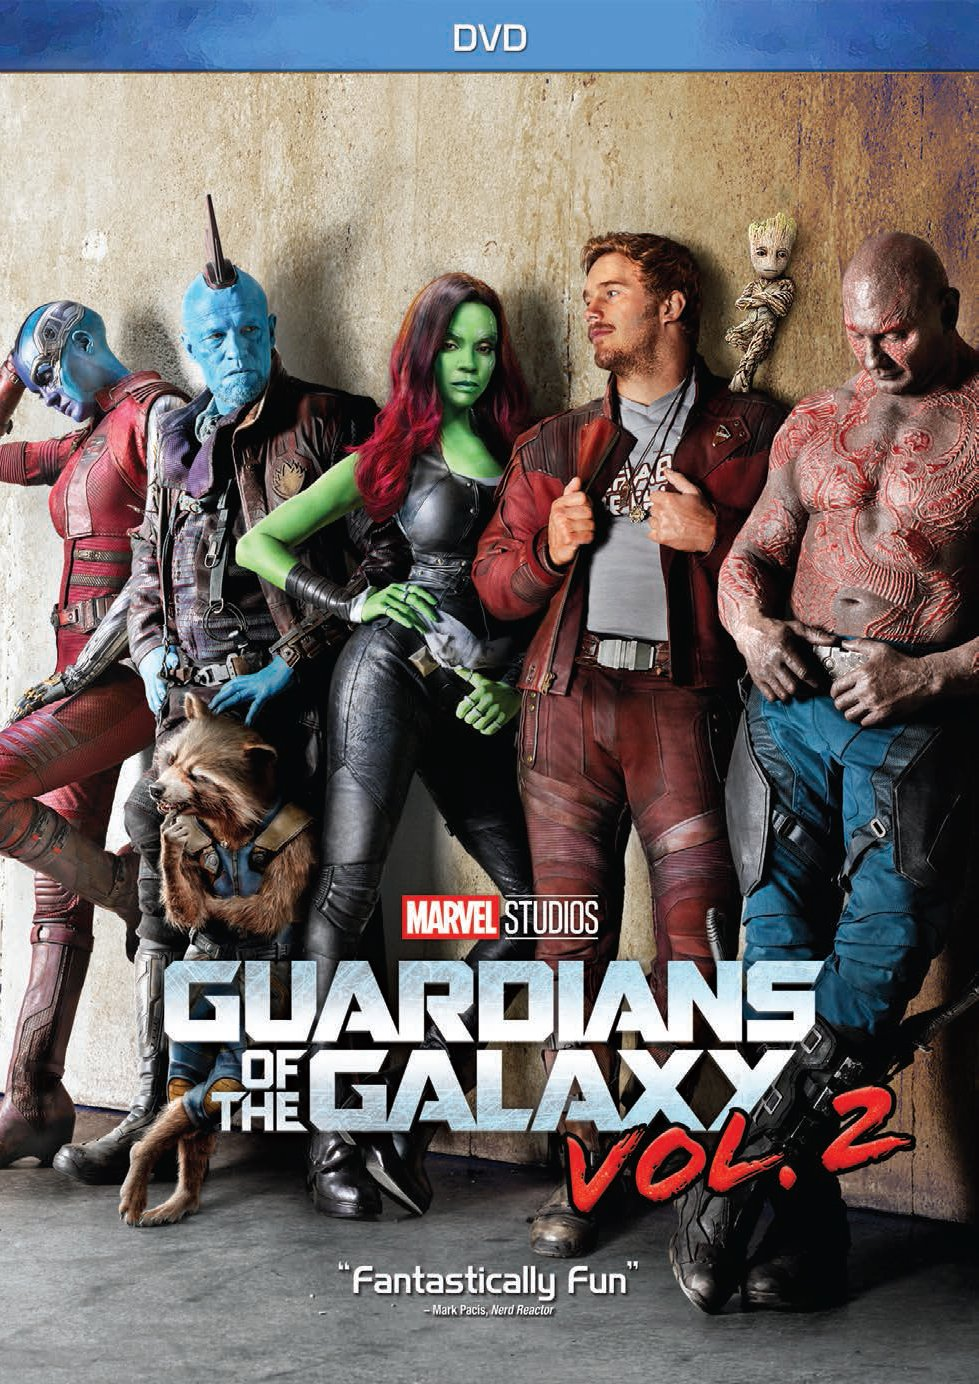 DVD : Guardians of the Galaxy, Vol. 2 (AC-3, Dubbed, , Widescreen, Dolby)